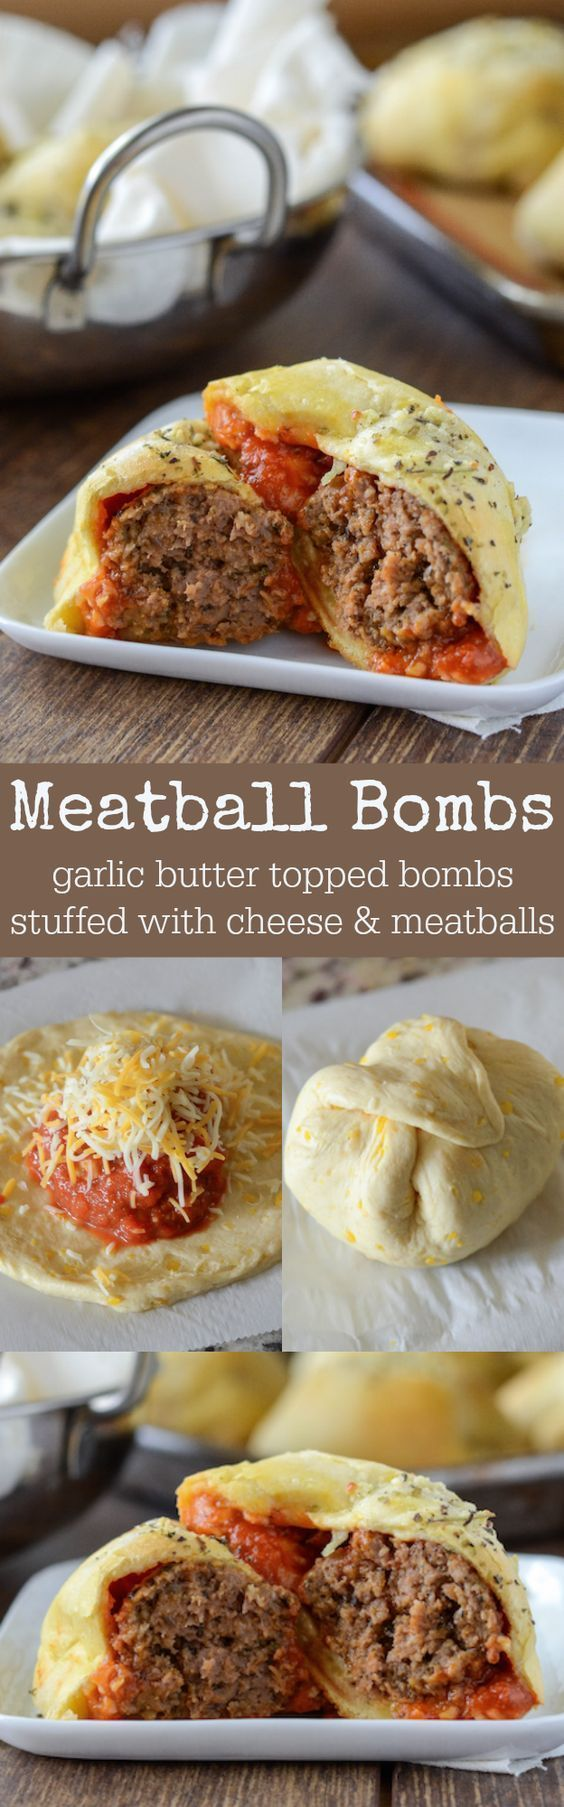 MEATBALL BOMBS - These Meatball Bombs are stuffed with marinara, meatball and cheese, then wrapped in dough and topped with a seasoned garlic butter. They are quick to make and have so much flavor!